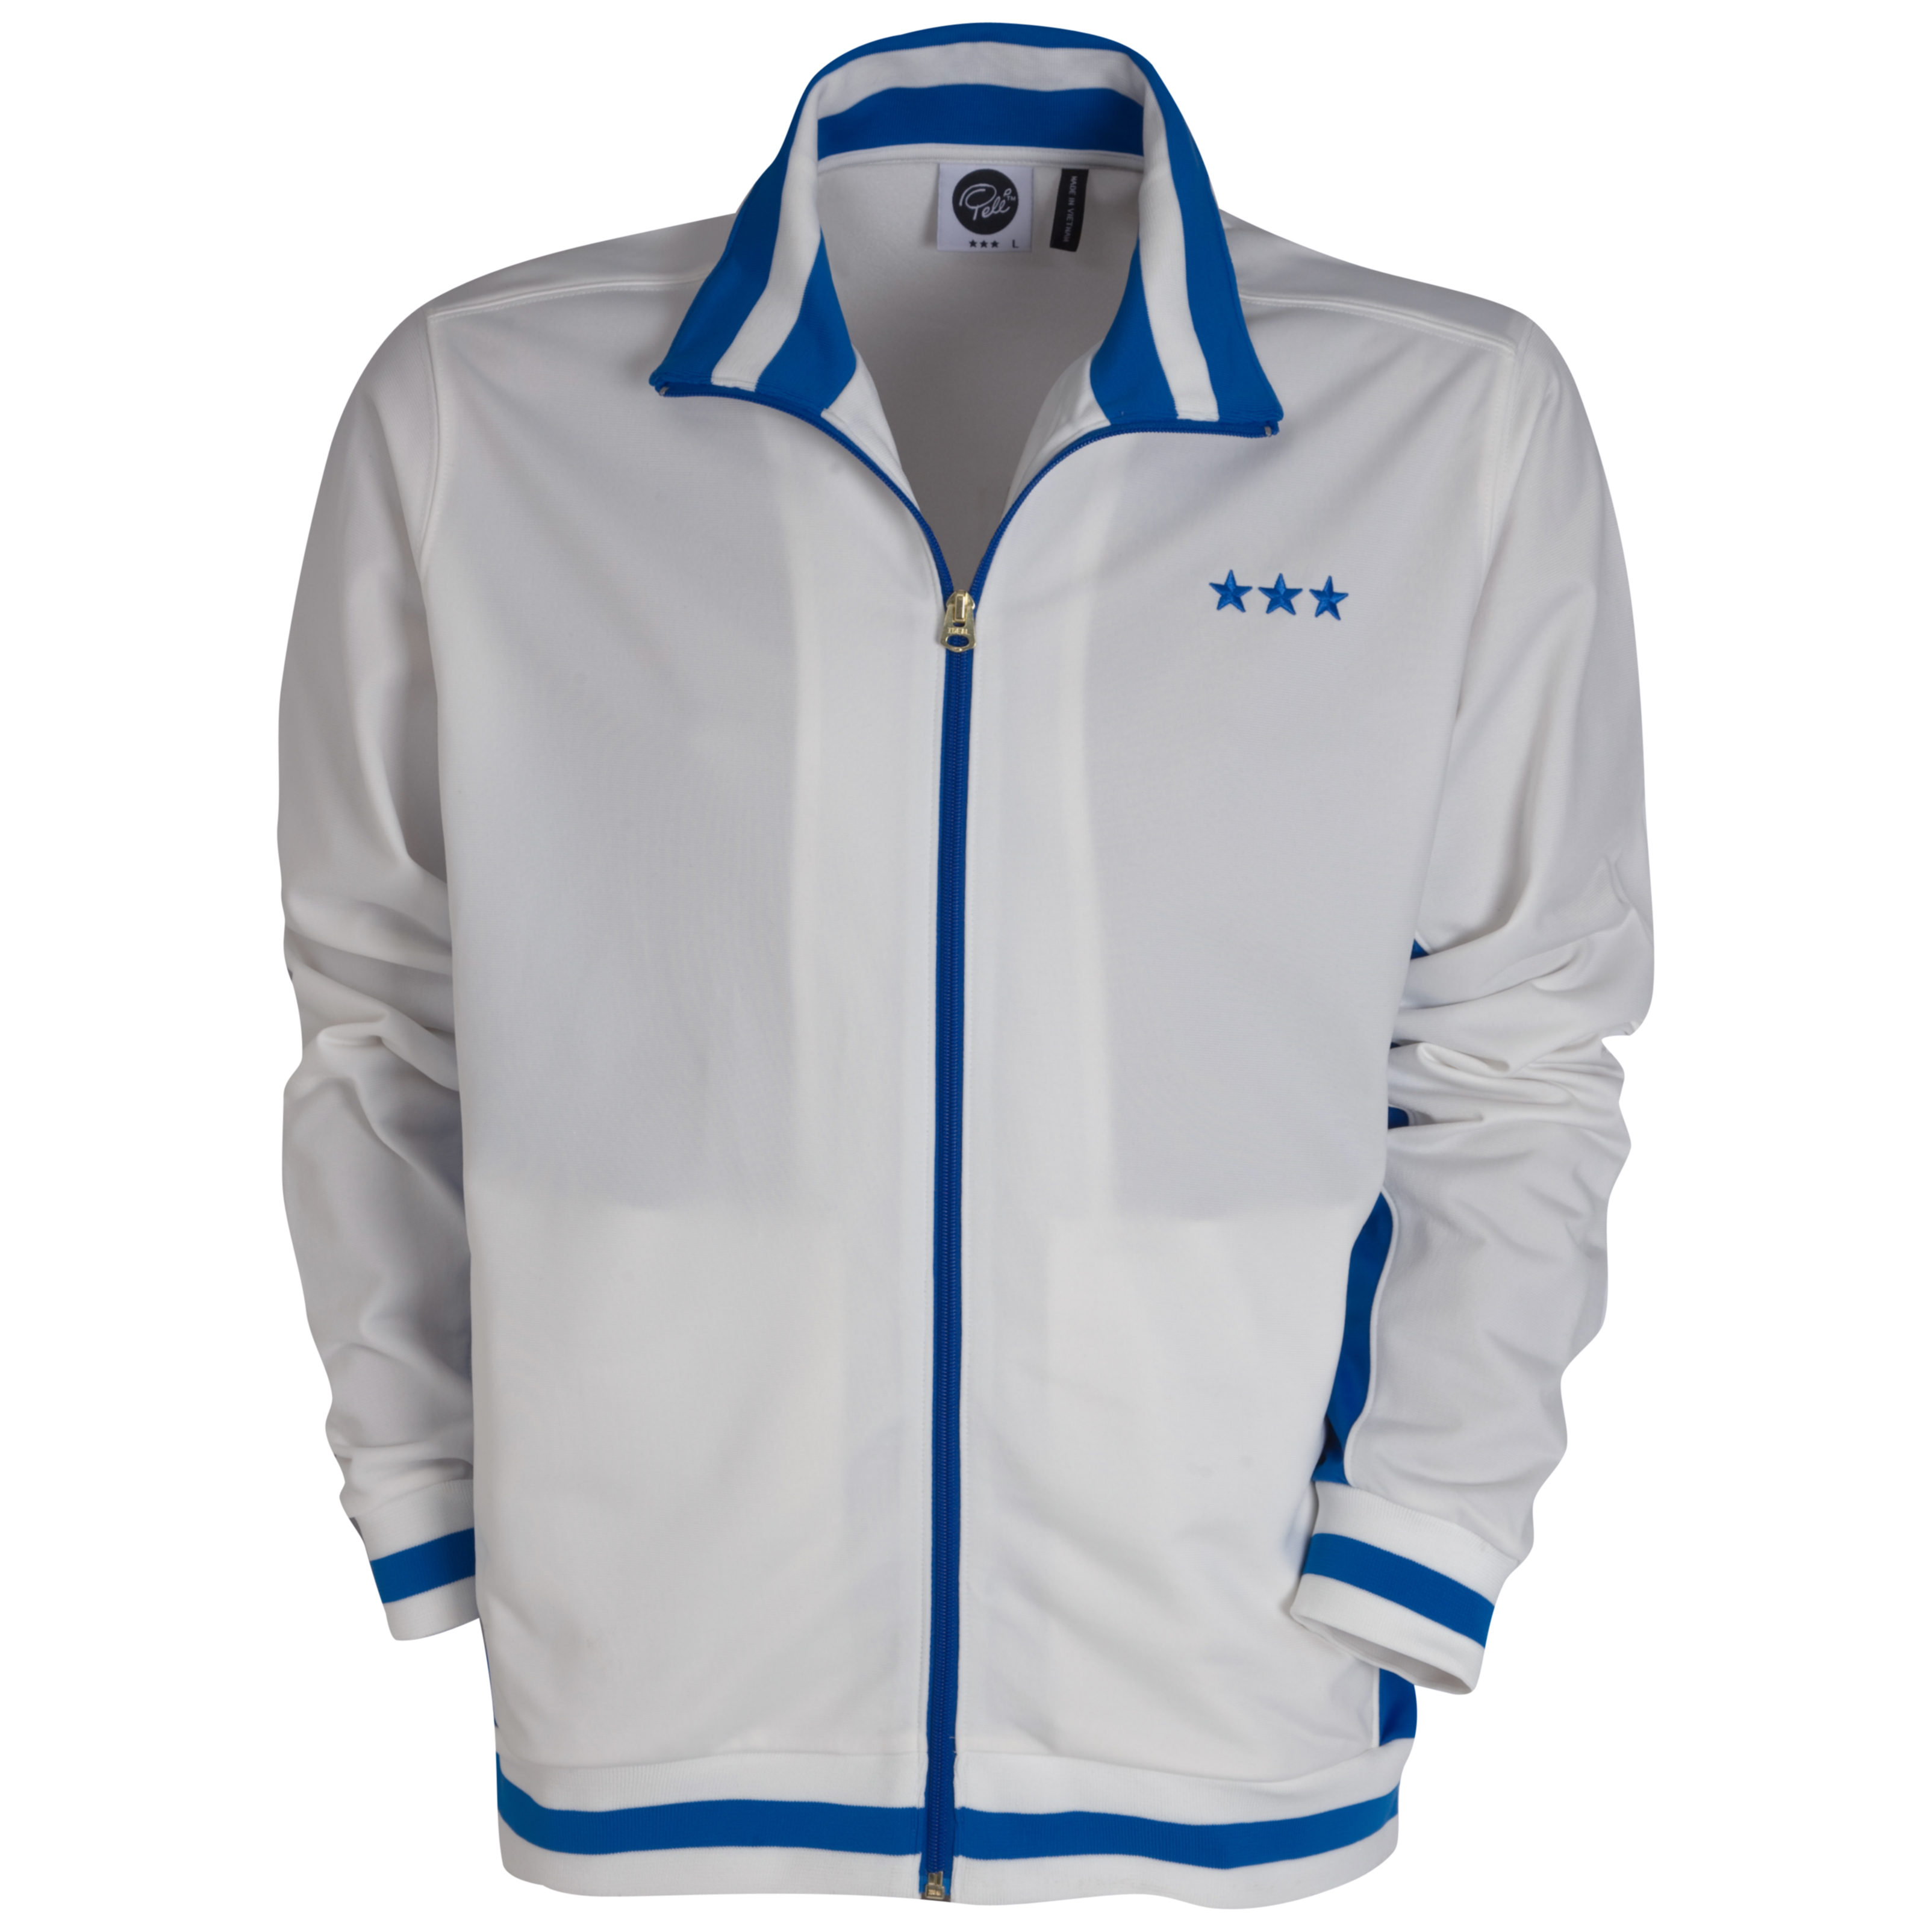 Pele Pel? Sports Track Jacket - Snow White/Princess Blue